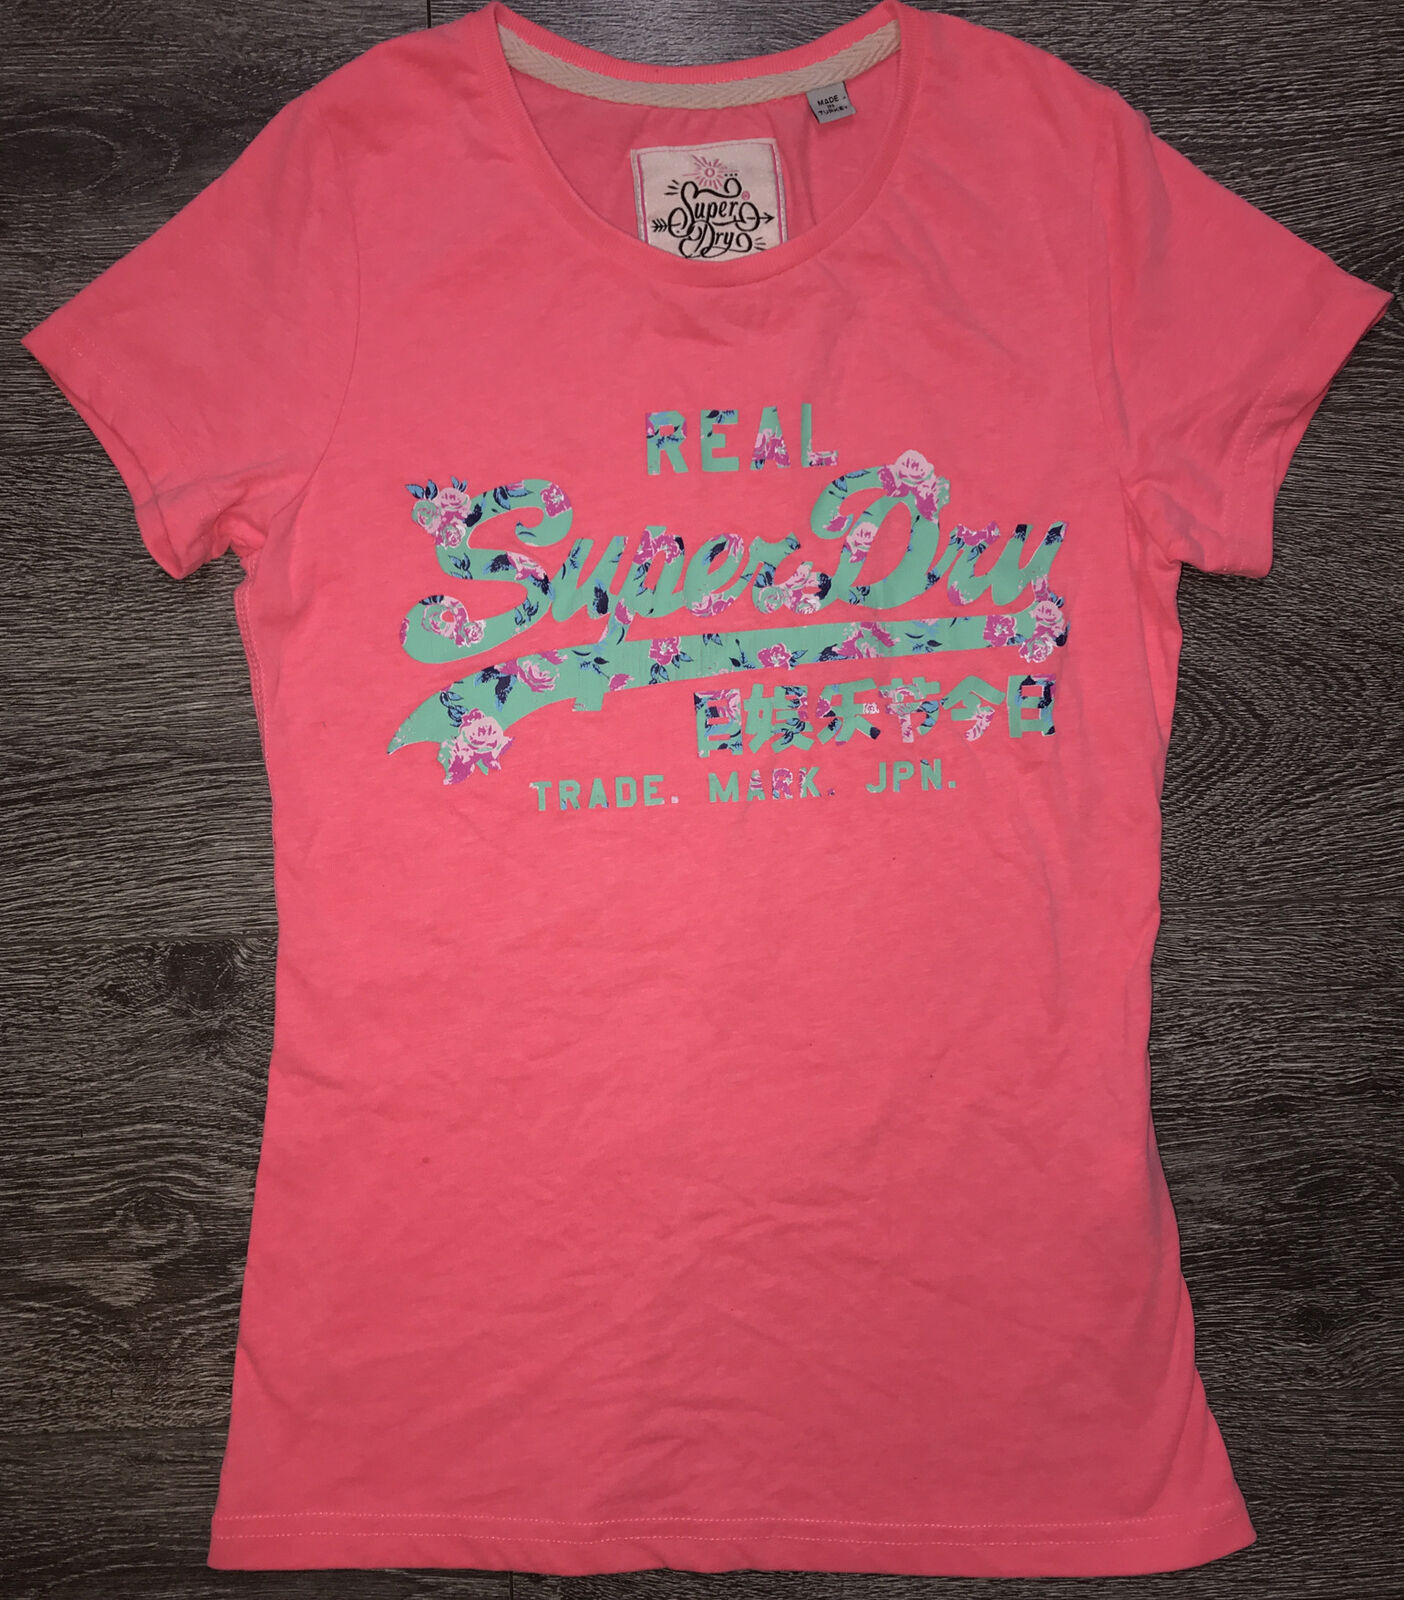 Superdry Girls Pink T-Shirt Pink Floral Condition Used - Size Small